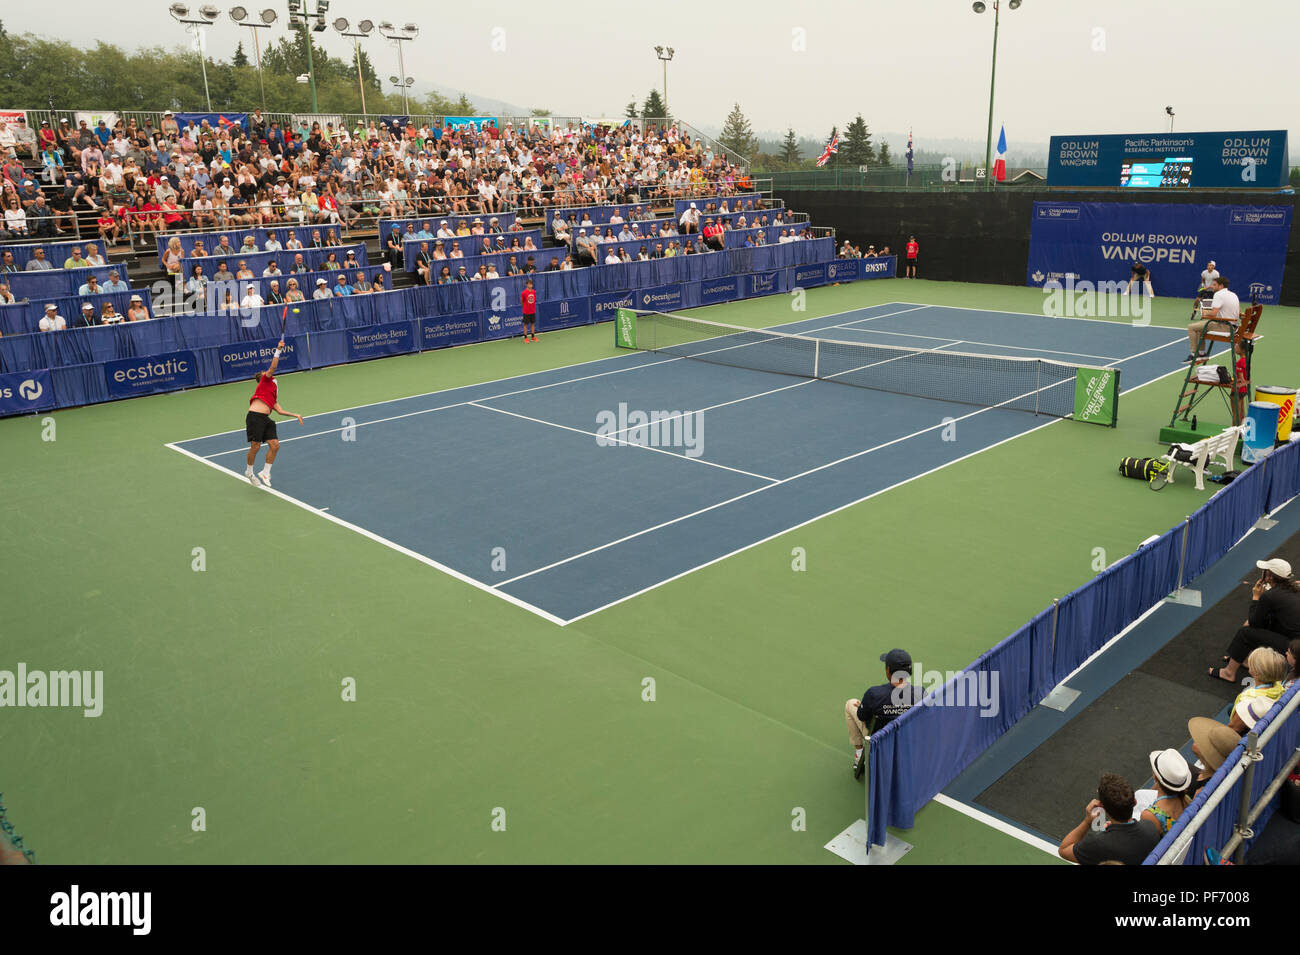 West Vancouver, Canada. 19 August 2018. Daniel Evans of Great Britain (left and Jason Kubler (right) compete in ATP Challenger Tour Mens single final at Centre Court. Odlum Brown VanOpen Hollyburn Country Club.  © Gerry Rousseau/Alamy Live News - Stock Image